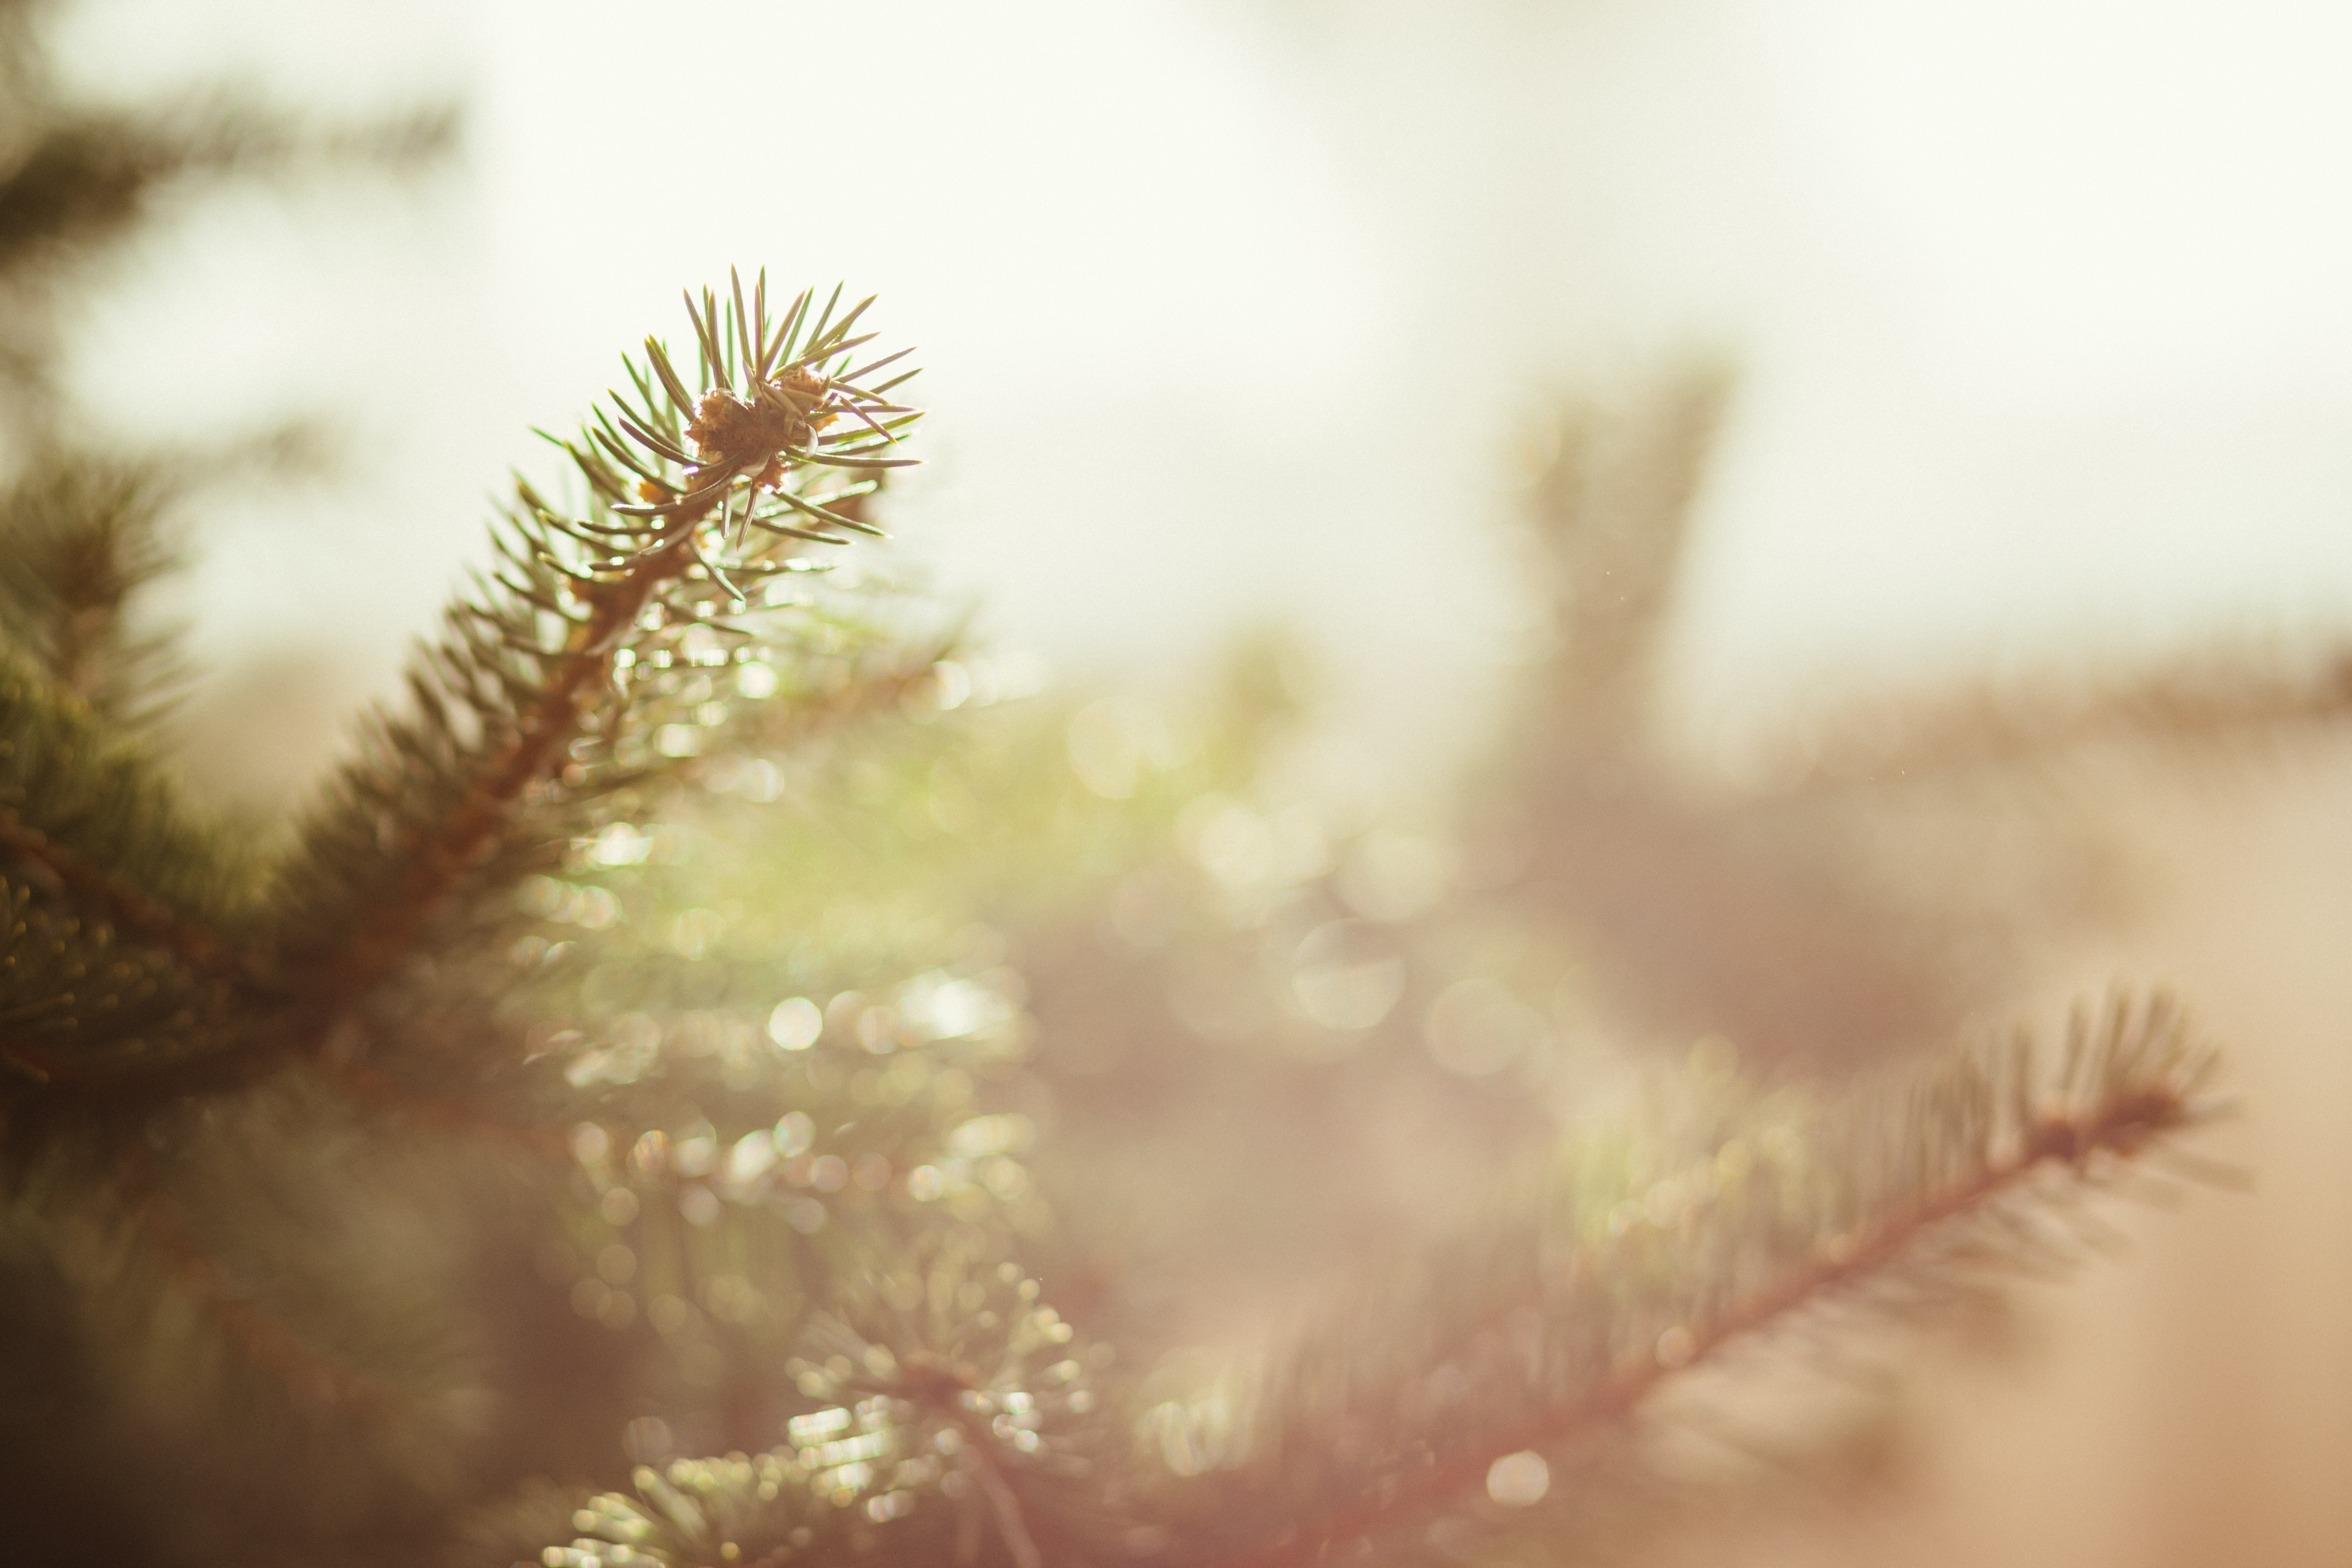 A macro shot of pine tree branches.